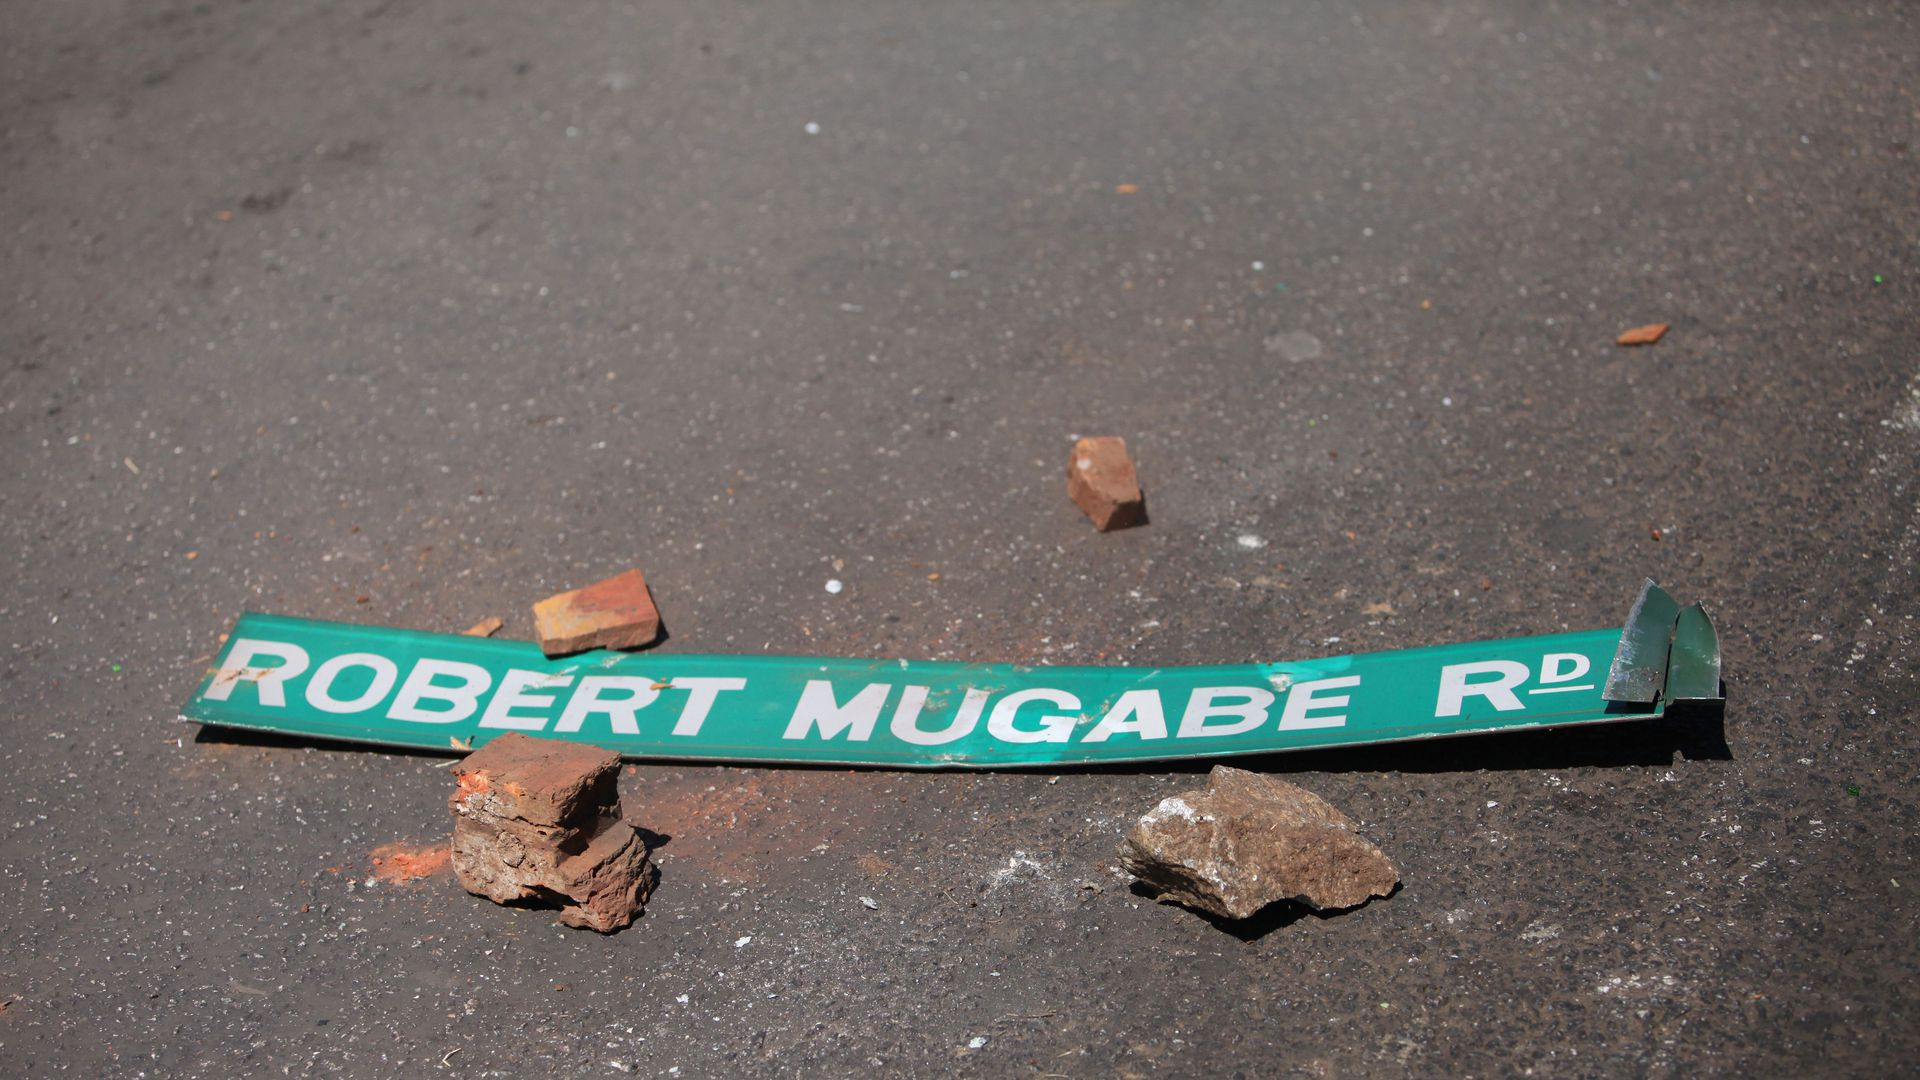 A street sign with Robert Mugabe's name on it